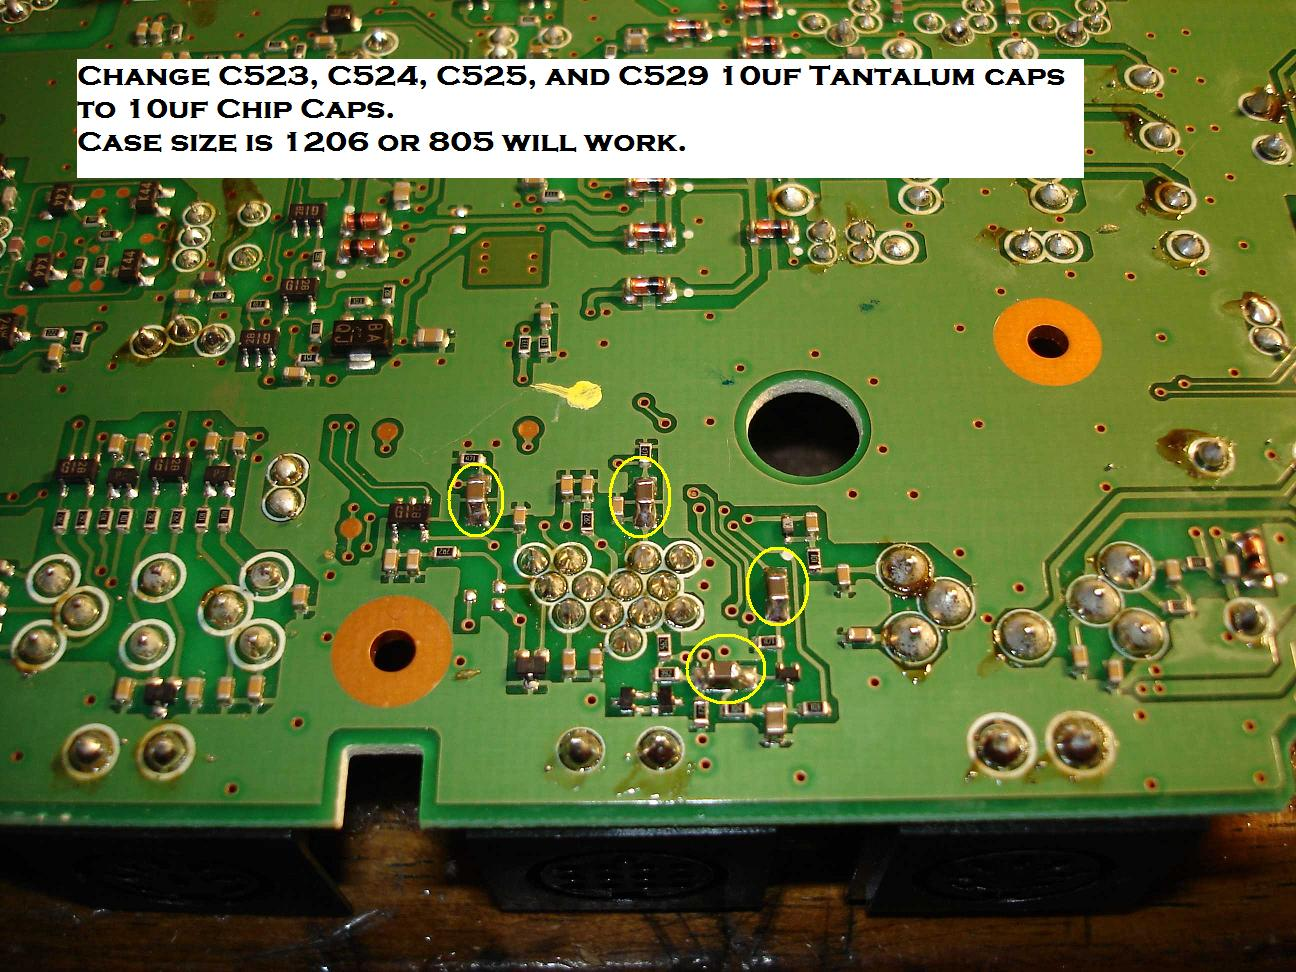 TS-2000 Review and Modifications - X-treme ESSB Audio FORUM